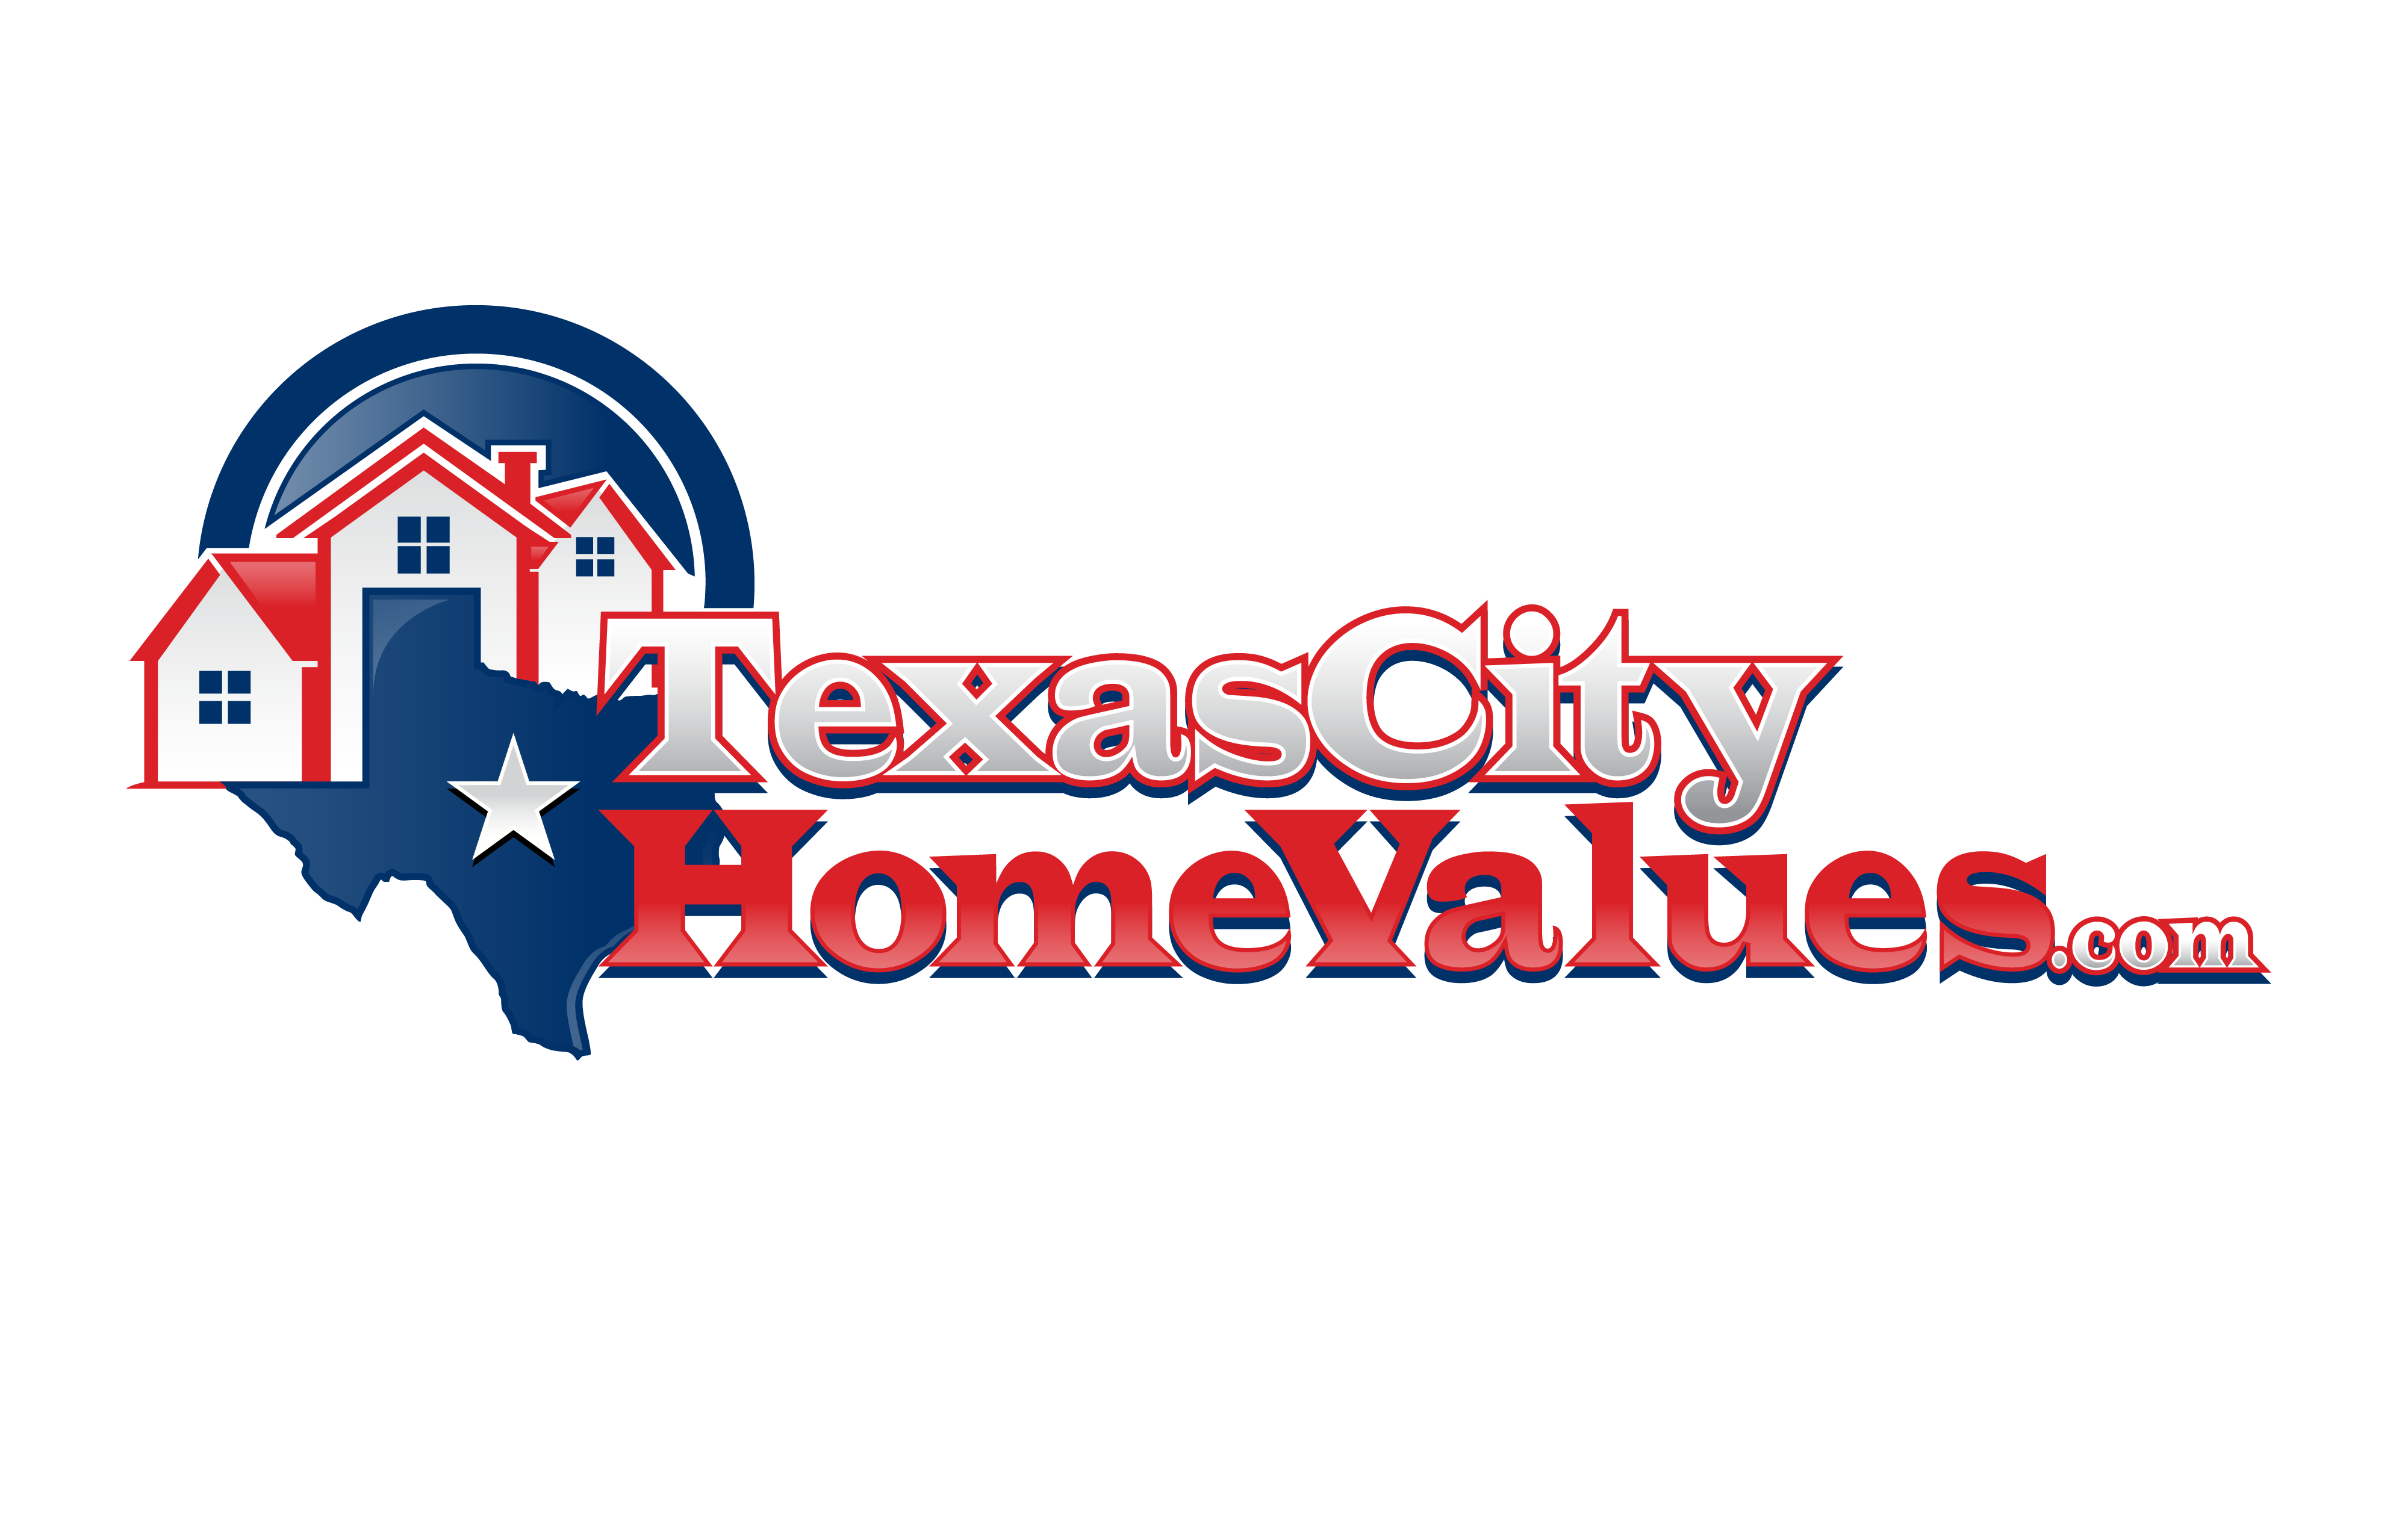 Texas City Home Values